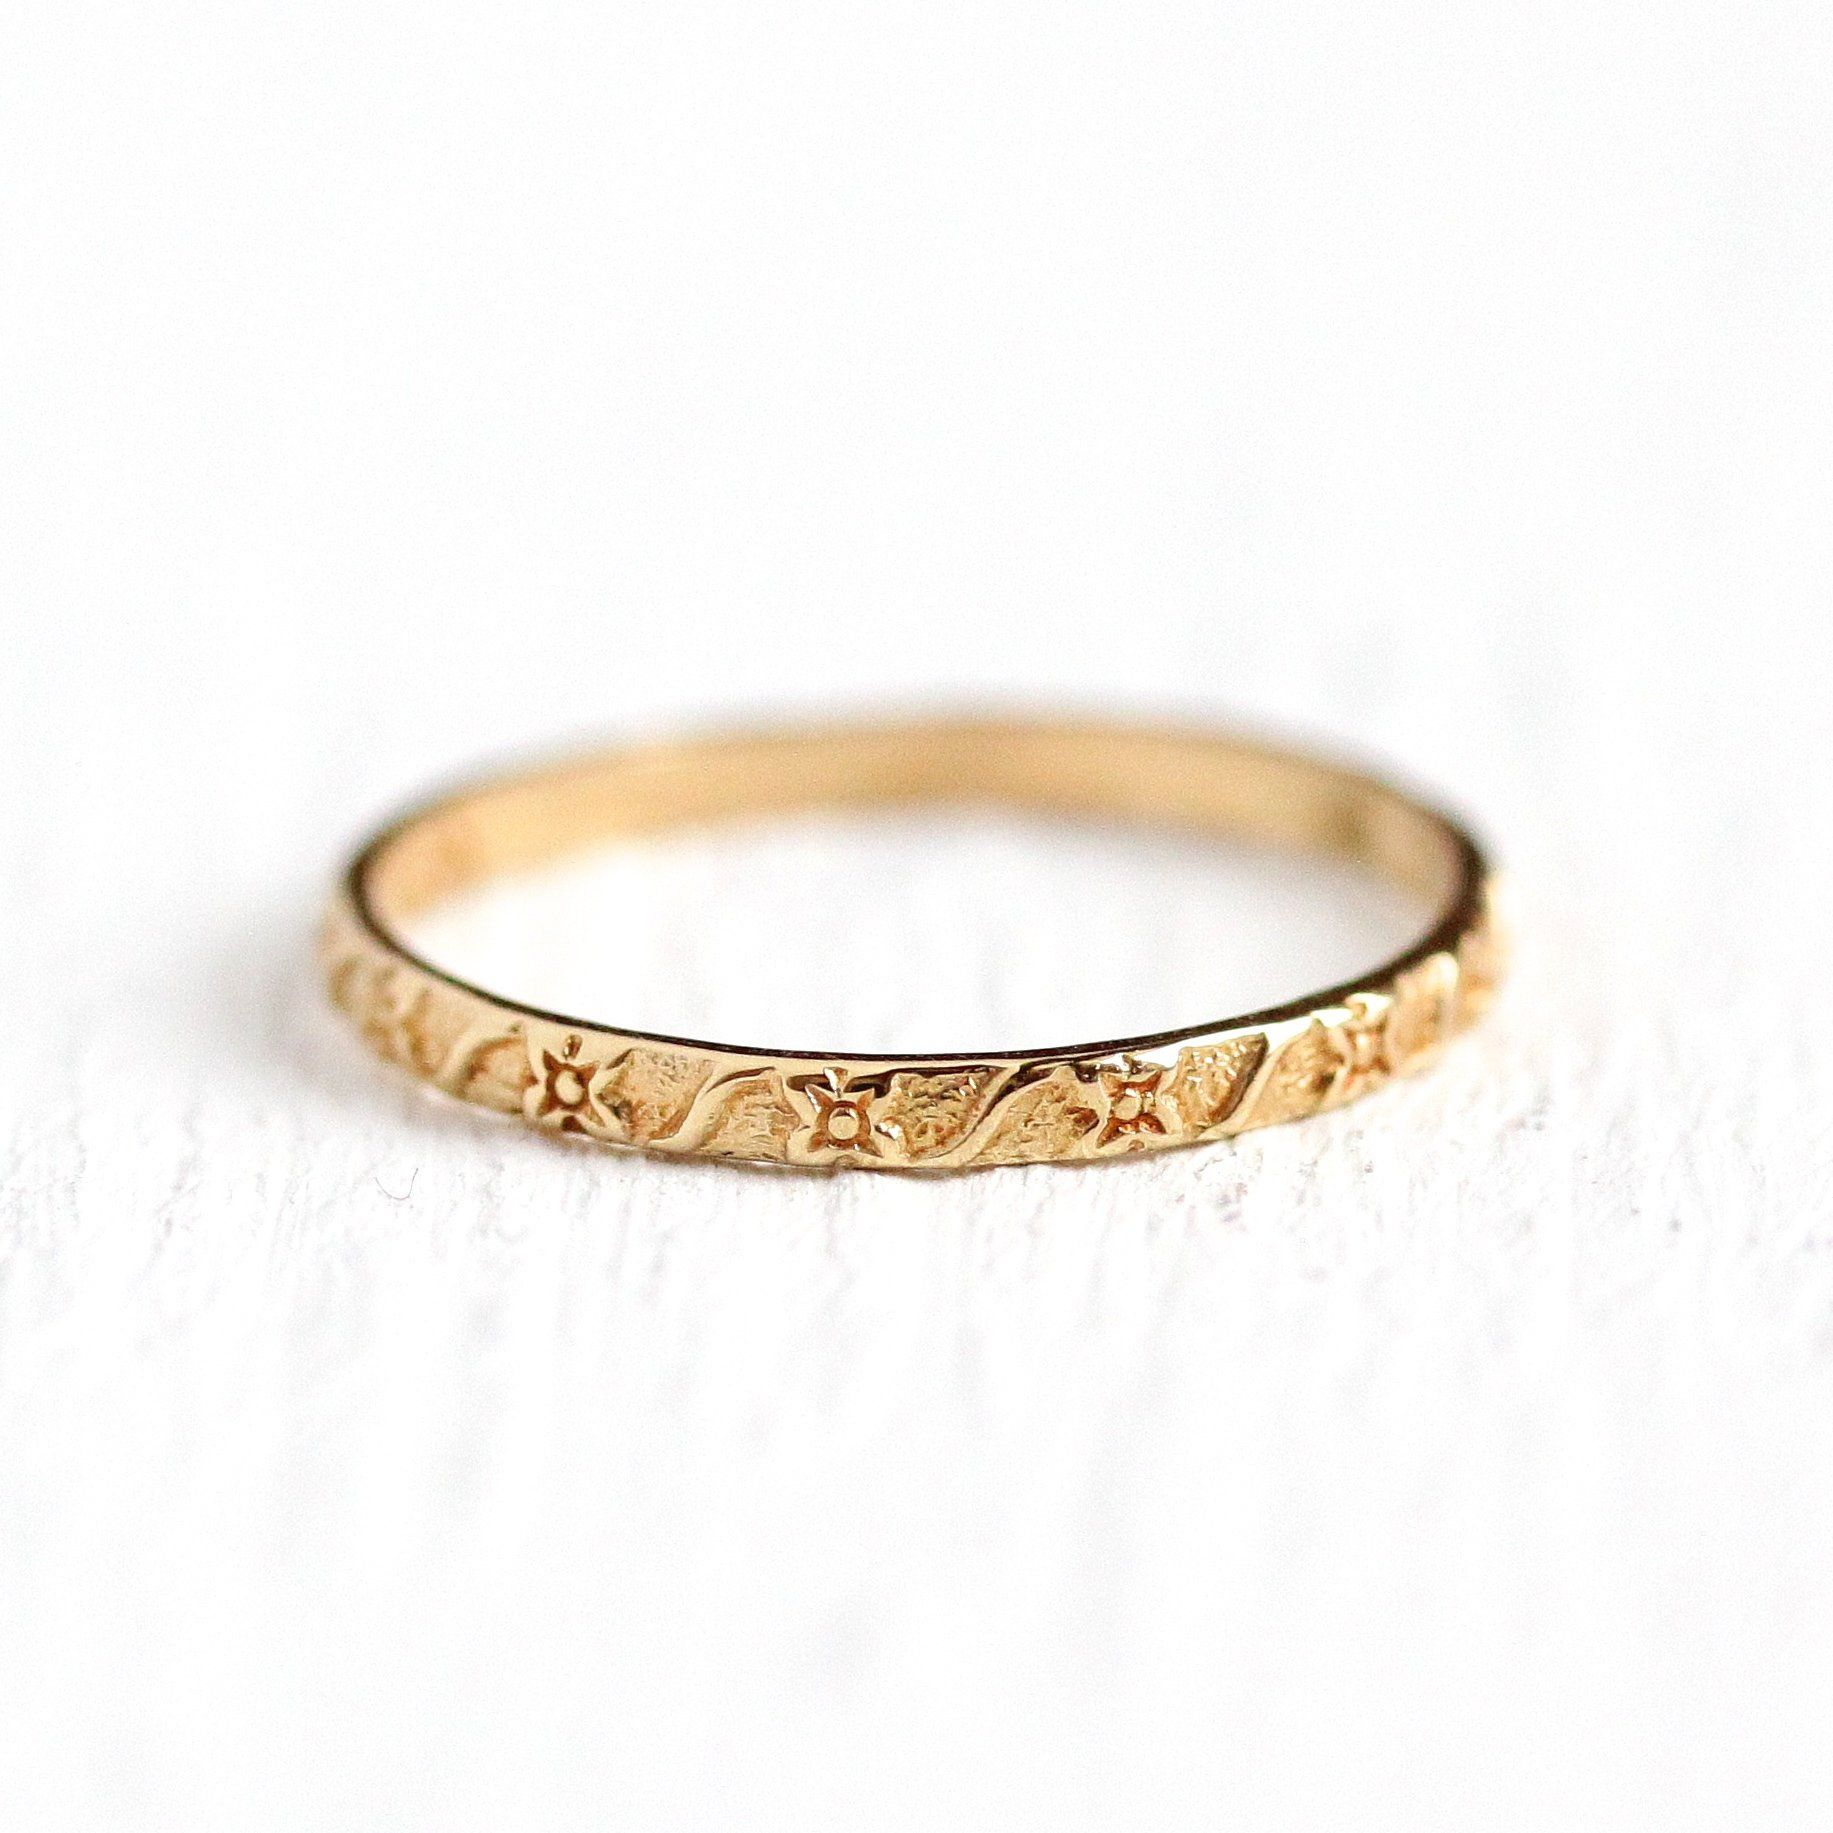 Flower Baby Band Vintage 1930s 10k Rosy Yellow Gold Floral